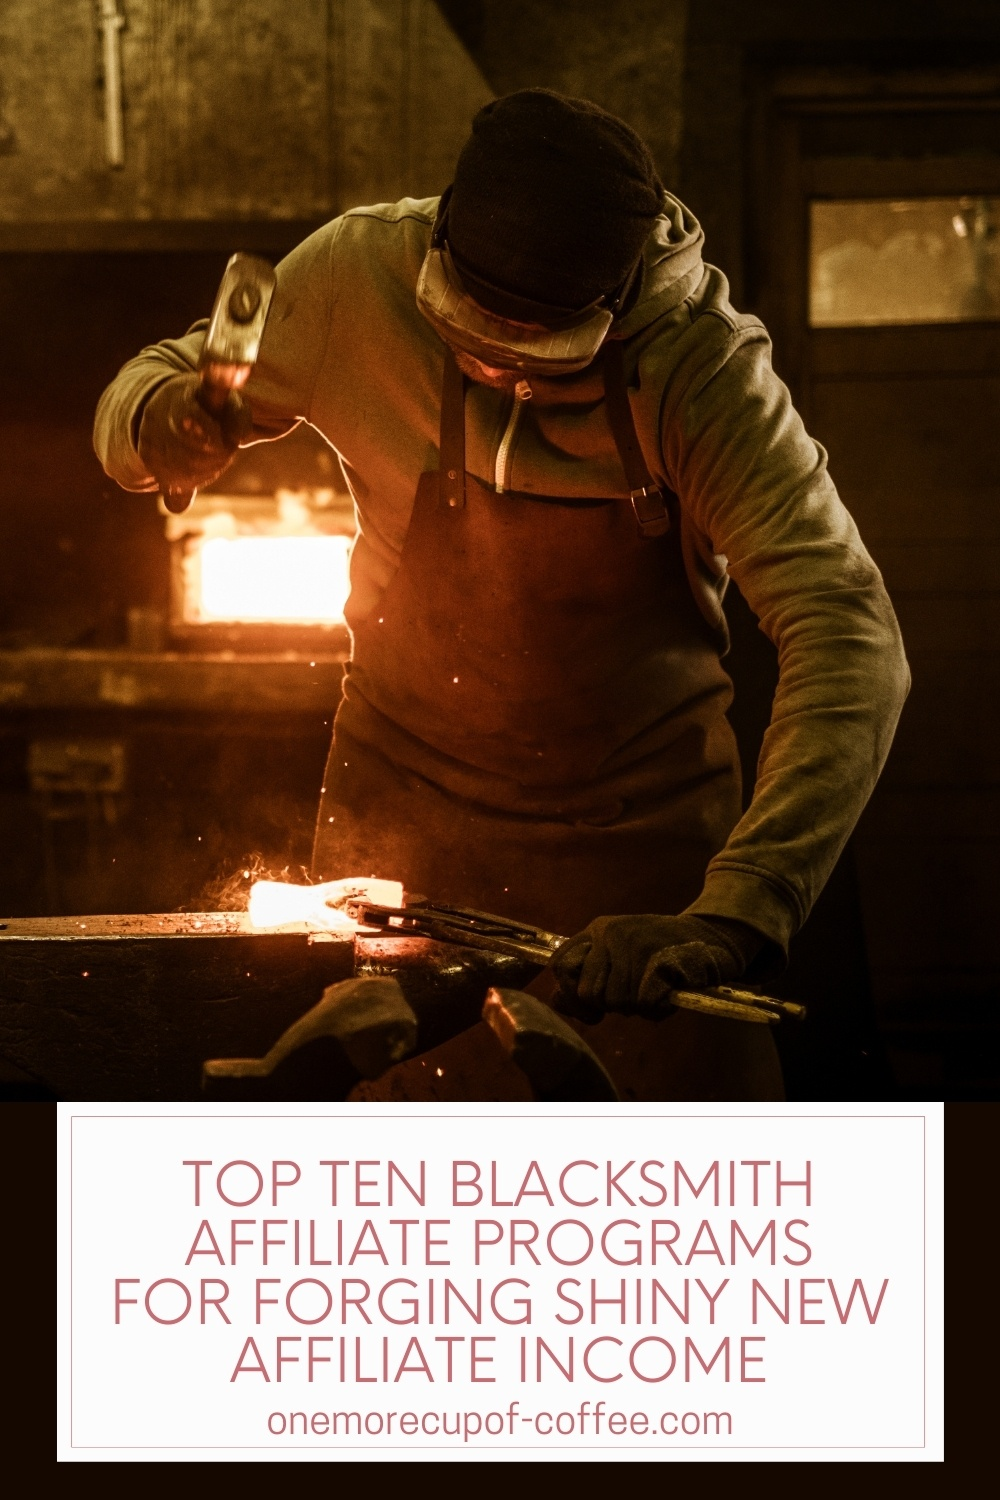 """blacksmith at work forging a heated metal with a hammer; with text overlay """"Top Ten Blacksmith Affiliate Programs For Forging Shiny New Affiliate Income"""""""